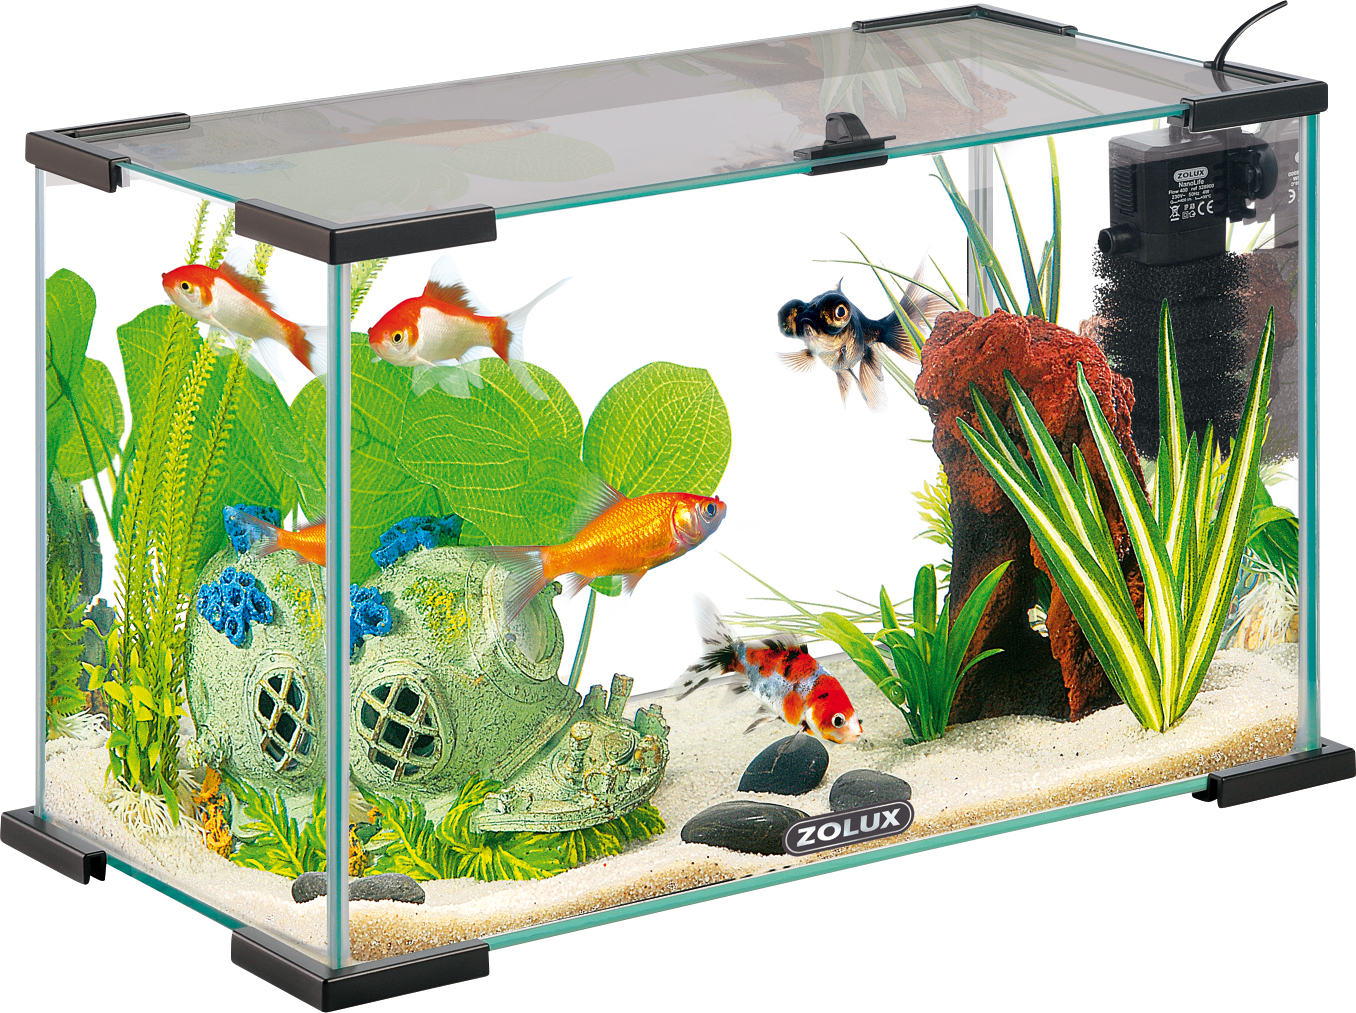 accessoires aquarium. Black Bedroom Furniture Sets. Home Design Ideas